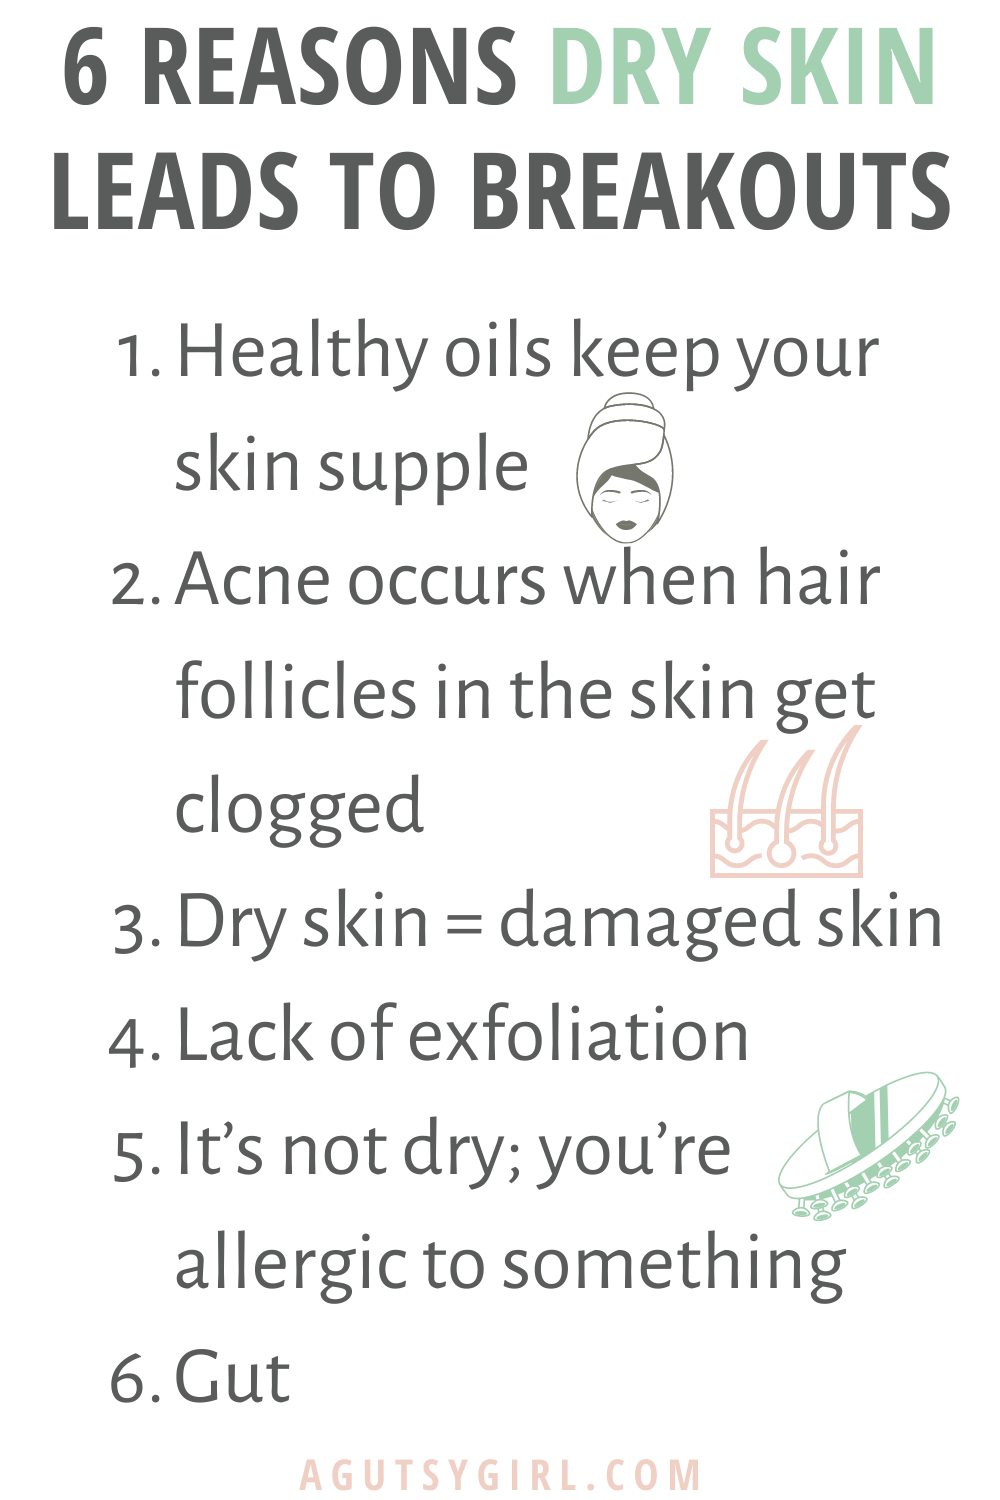 6 Reasons Dry Skin Leads to Breakouts agutsygirl.com #dryskin #guthealth #skincare